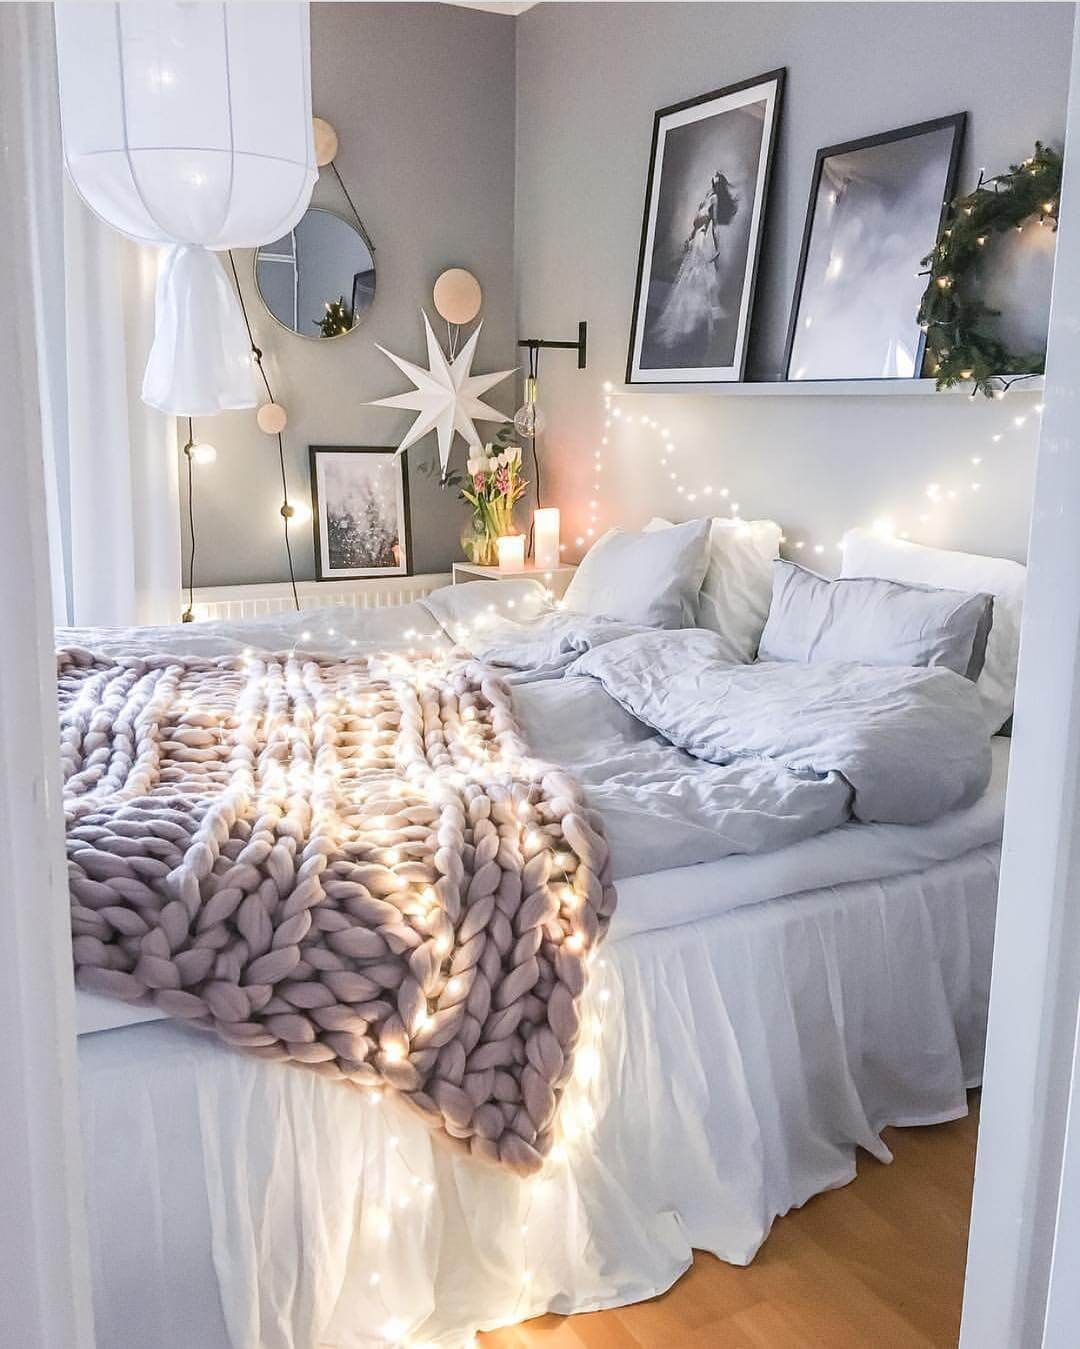 30 Warm and Cozy Bedroom Inspirations 30